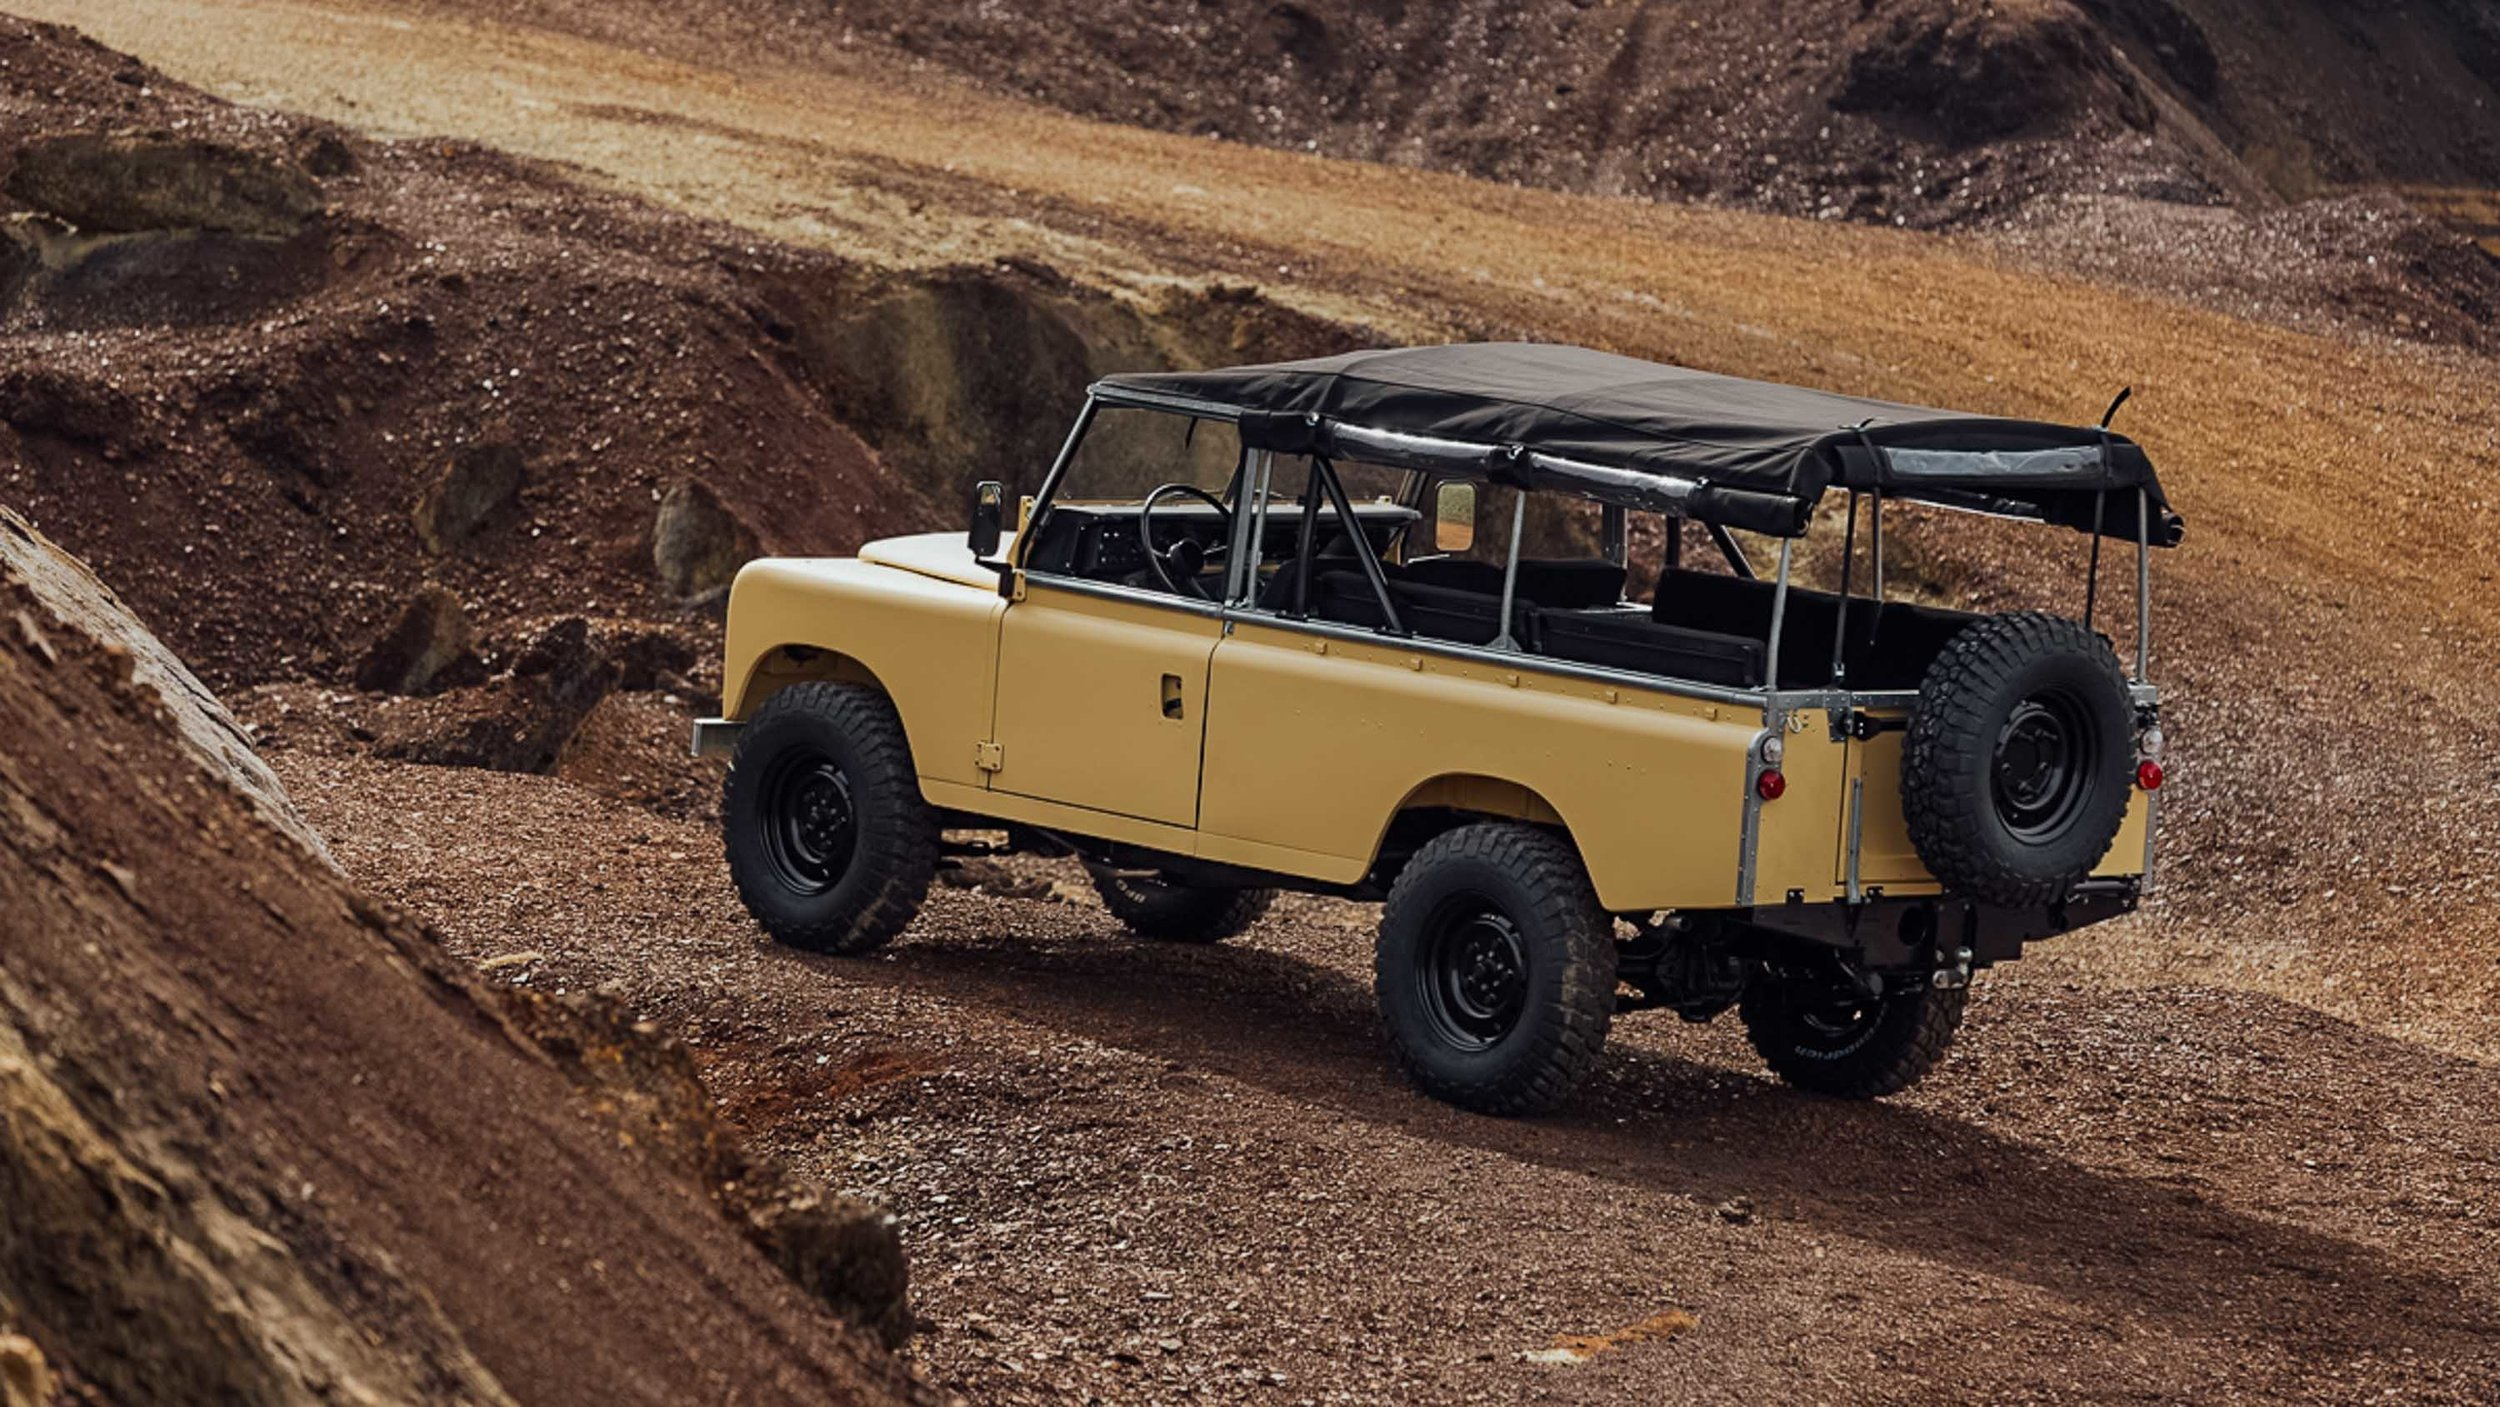 coolnvintage Land Rover S3 (186 of 207).jpg